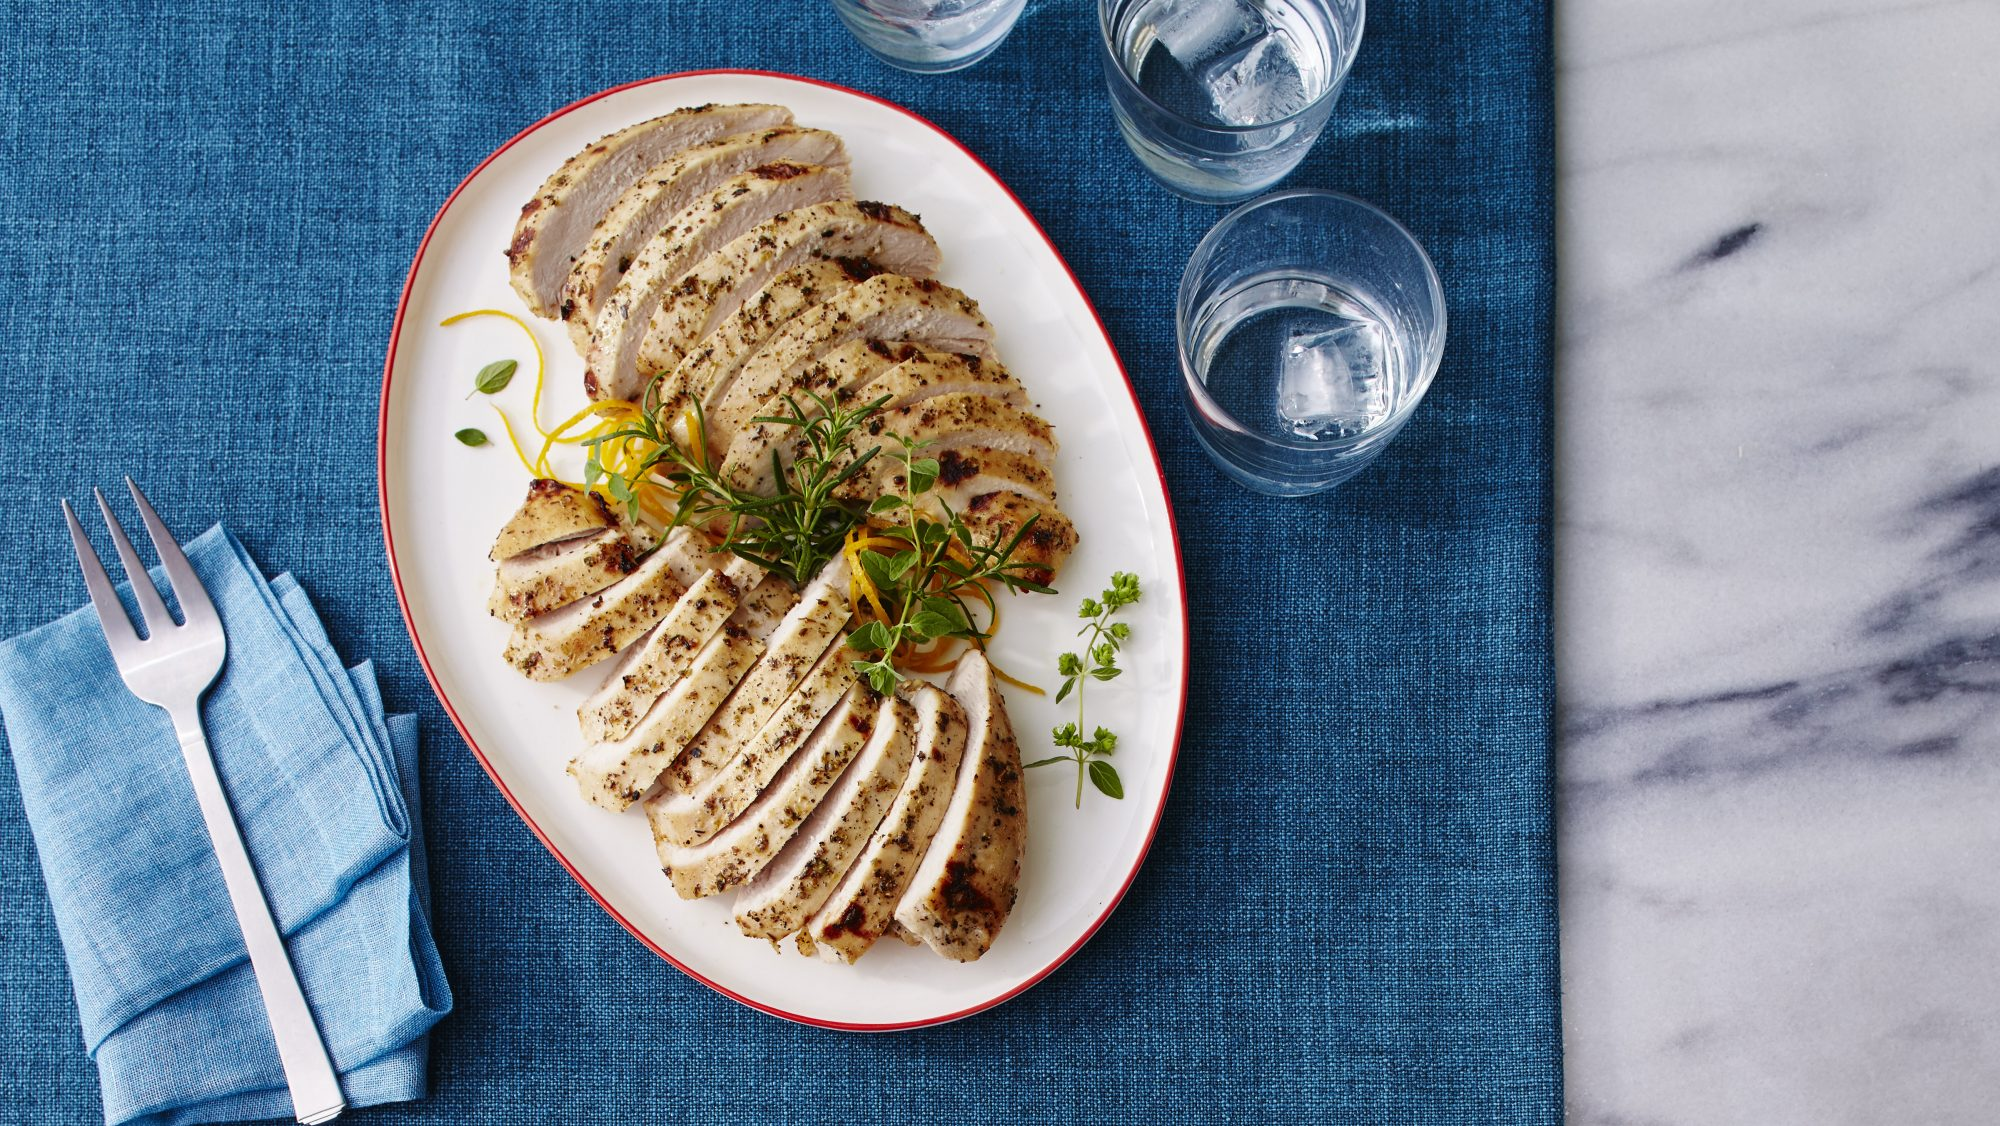 Citrus-Marinated Turkey Breast Recipe